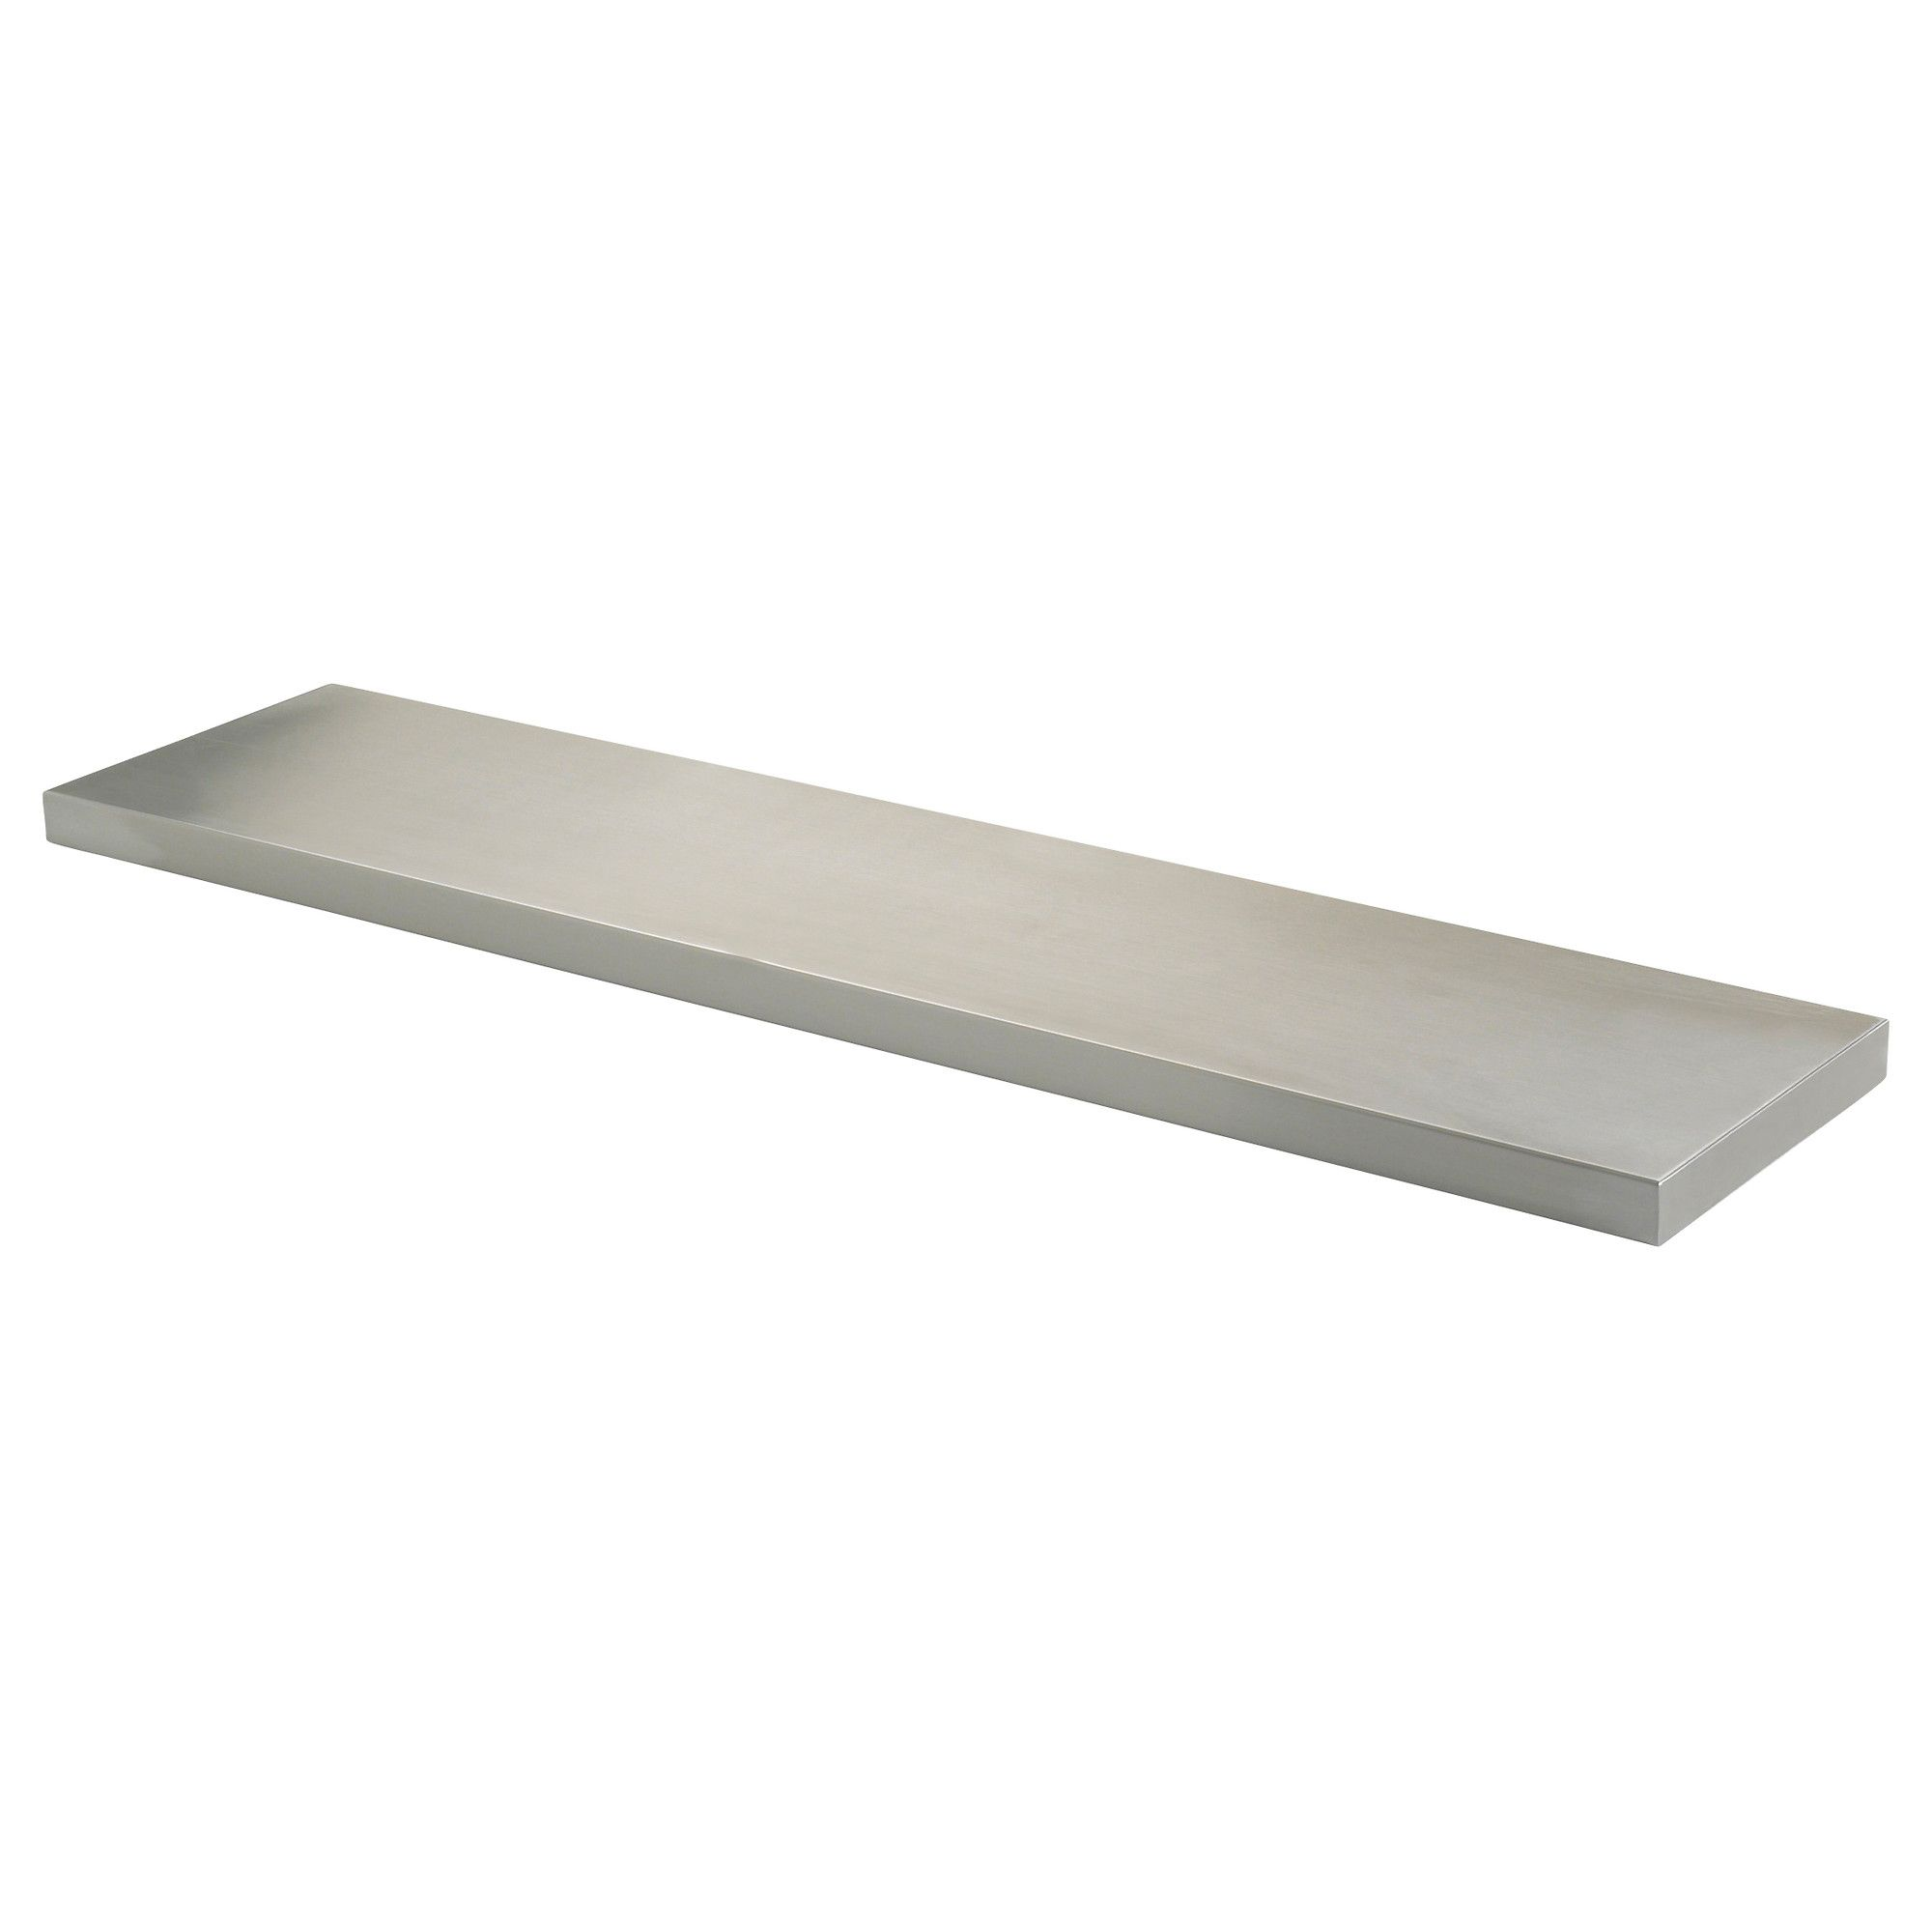 Ekby mossby shelf 31 1 8x7 1 2 ikea 20 could use as top of my console table wall its going on is 38in